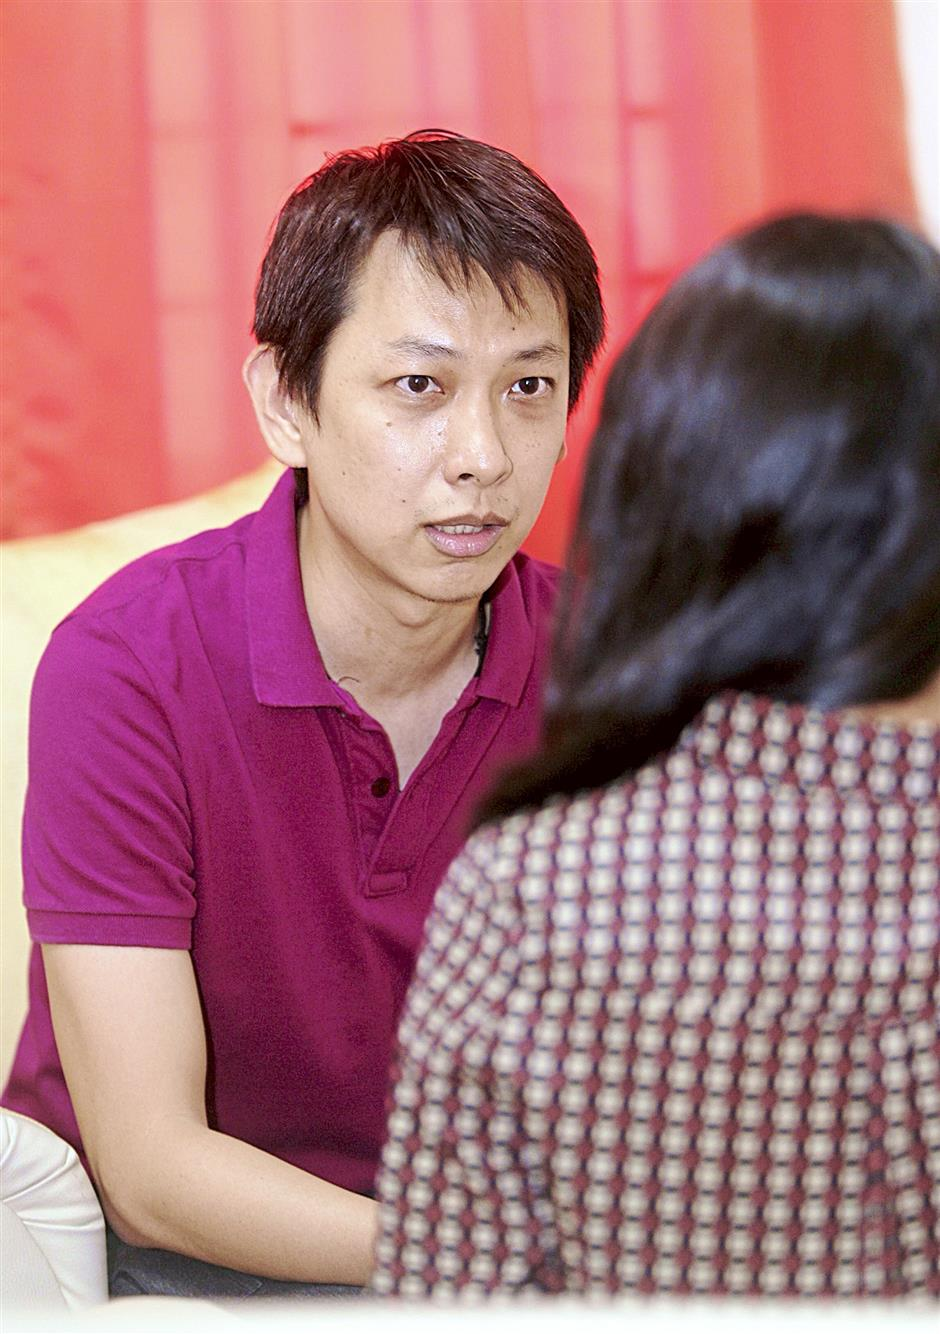 'It makes a lot of difference to have someone pull you through a rough patch,' says Kenny Lim.